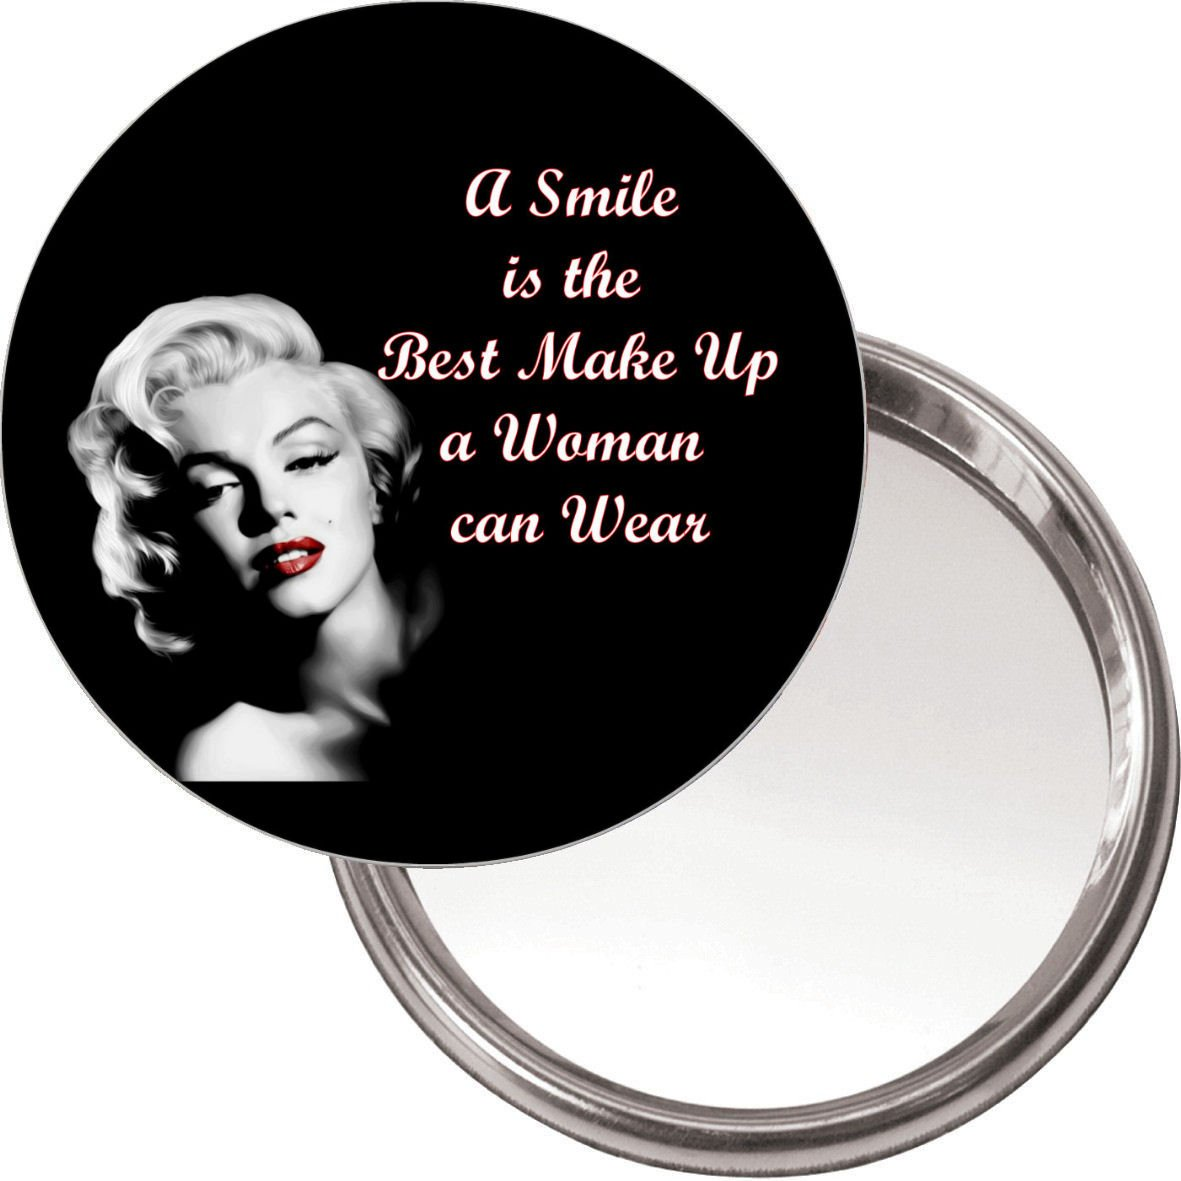 Unique Makeup Button Mirror with Marilyn Monroe image A smile is the best make up a woman can wear delivered in a black organza bag. Yummy Grandmummy